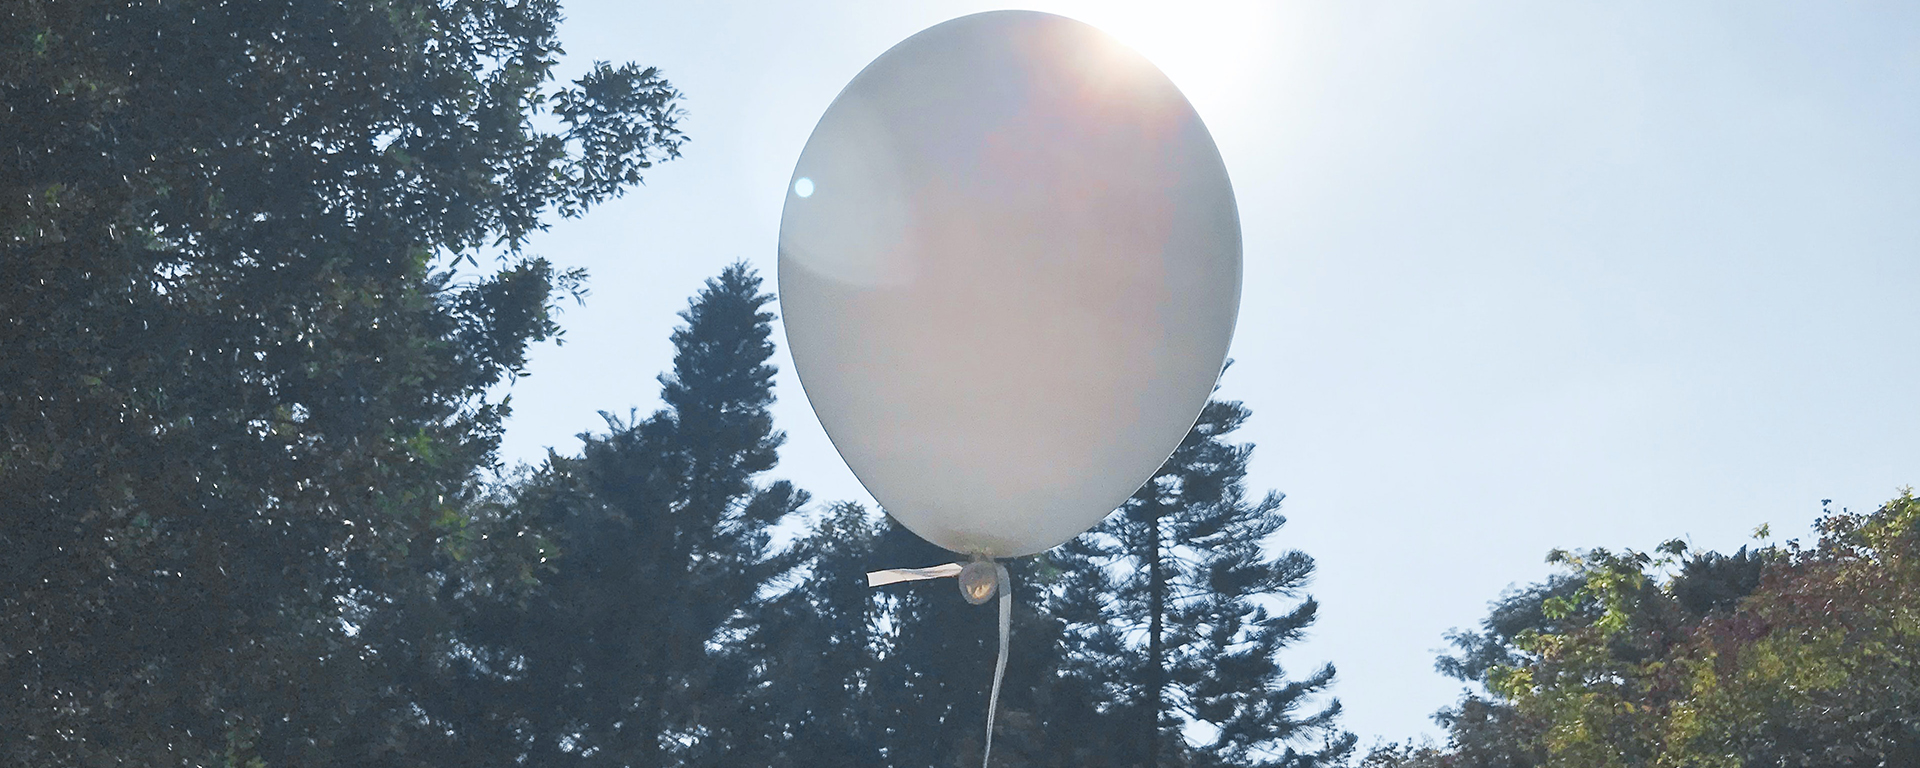 Balloon floating with trees in background